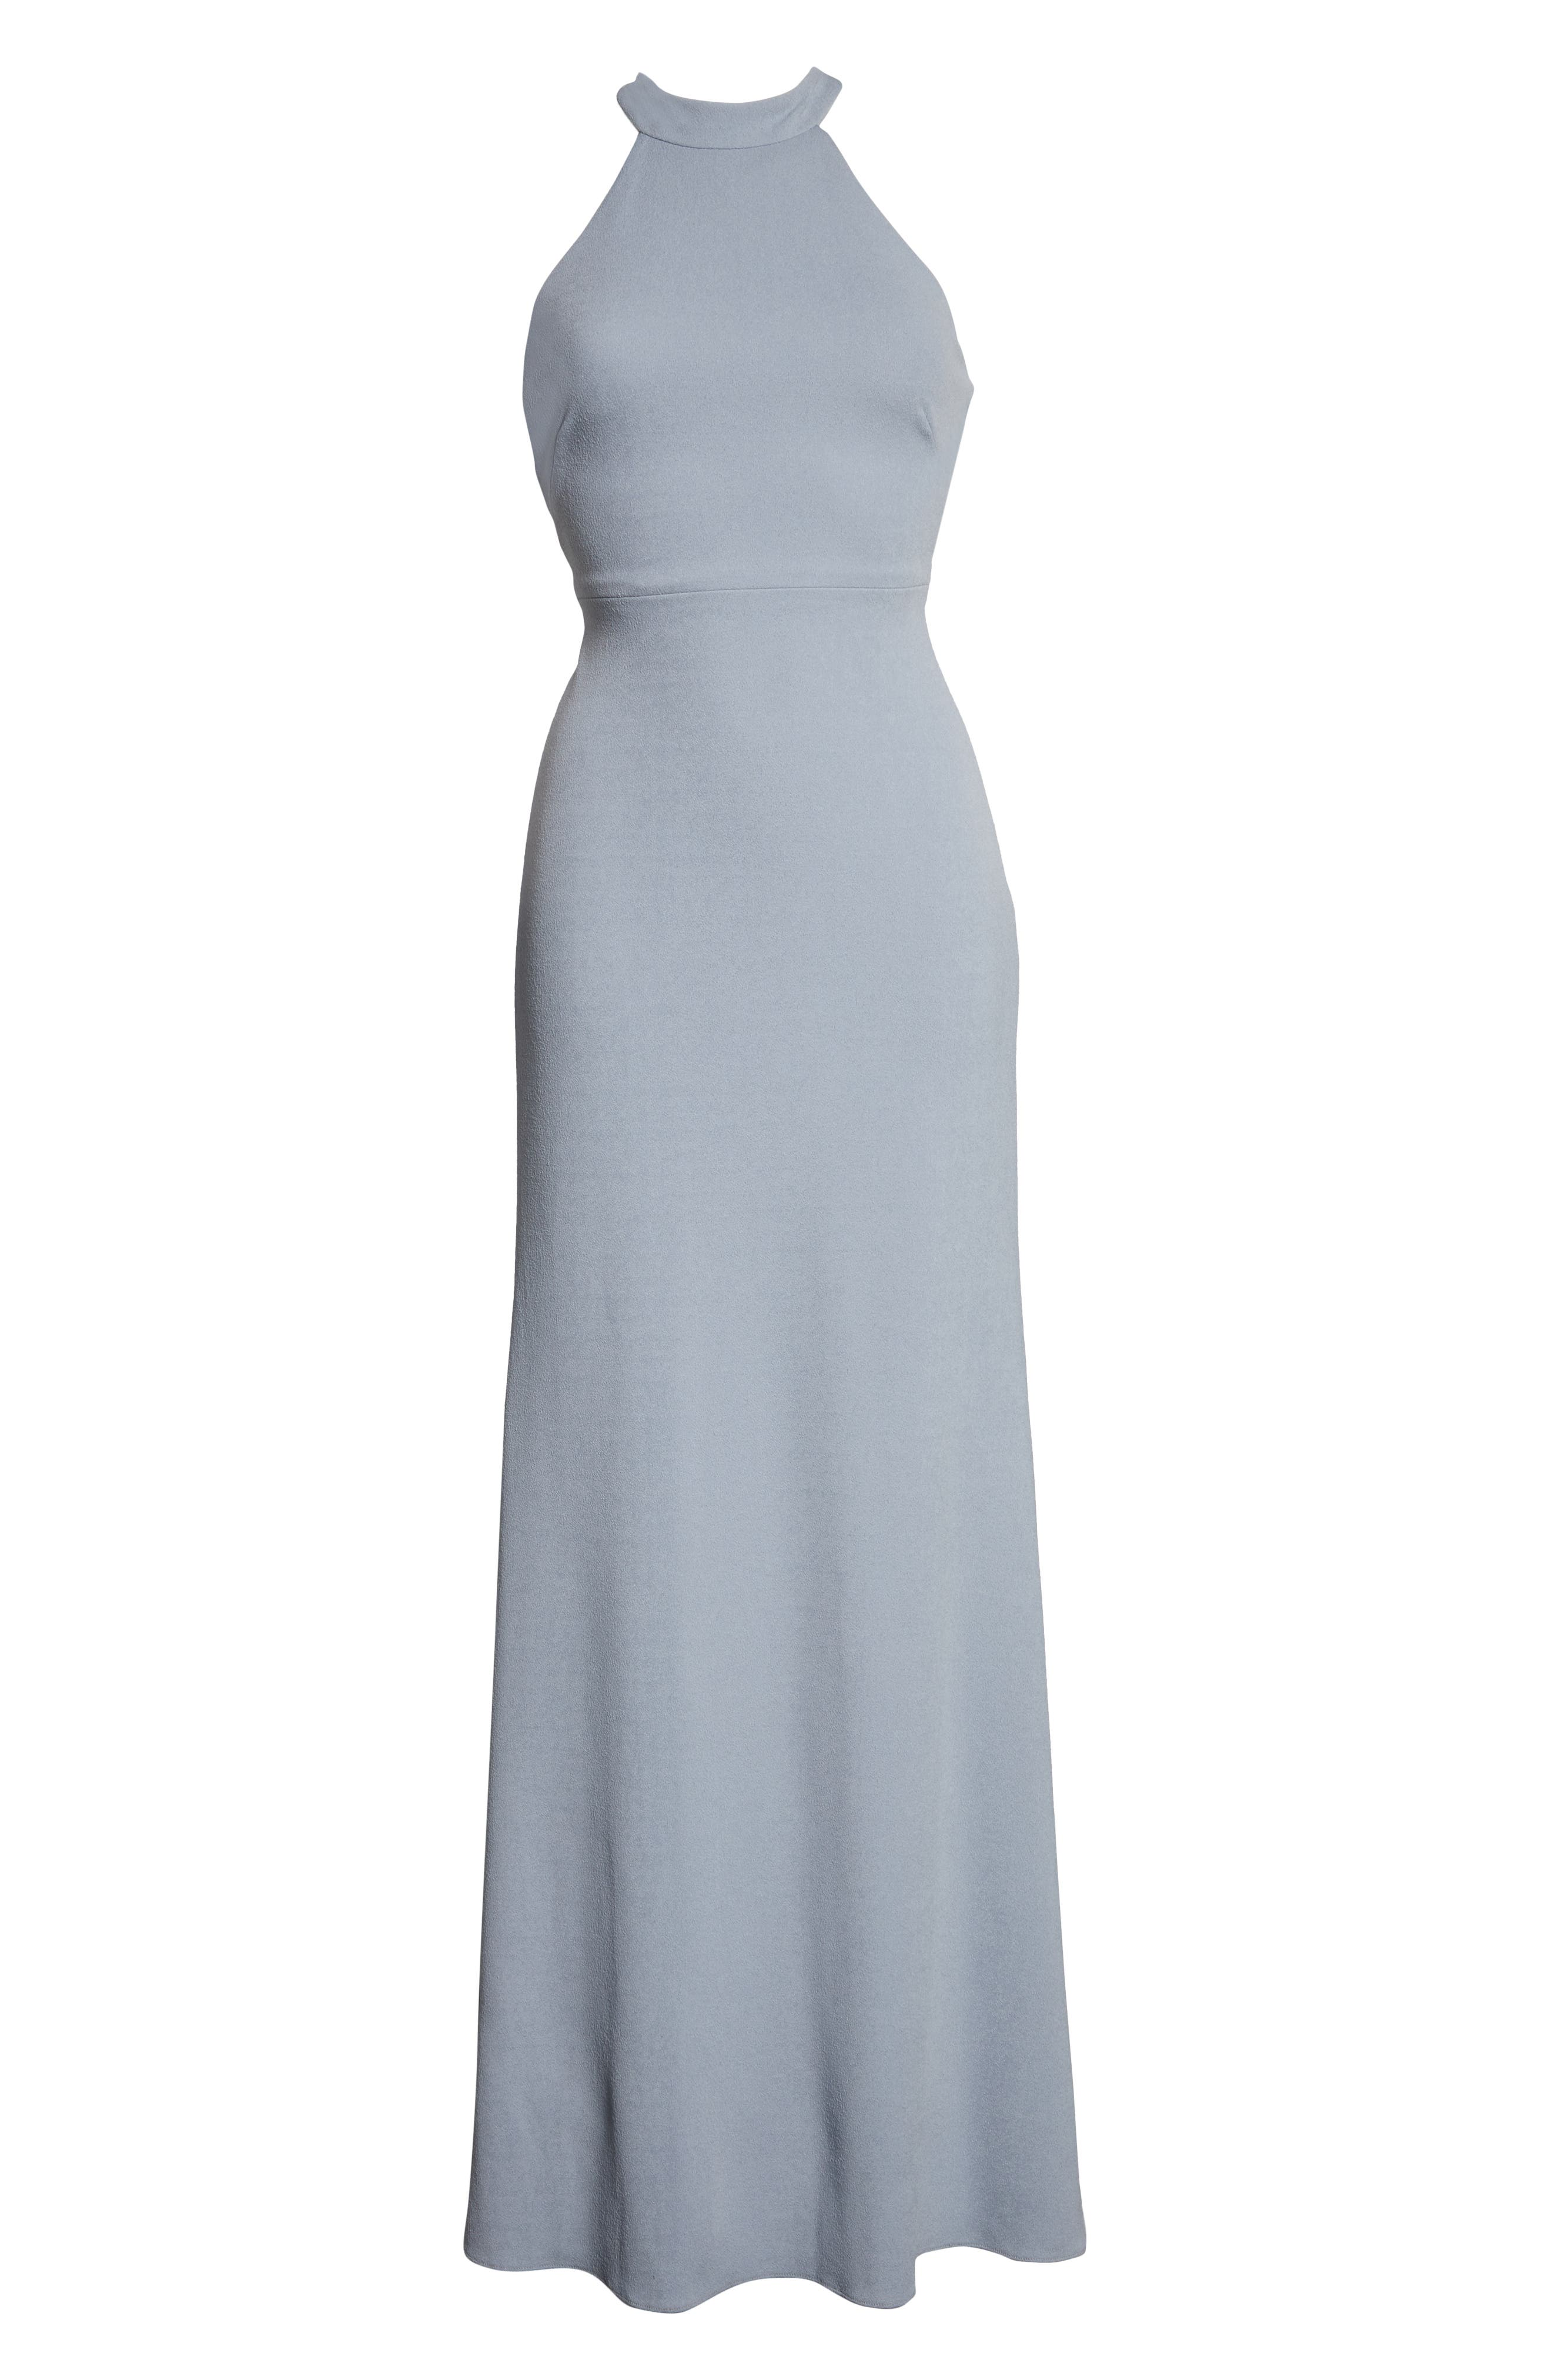 AFTER SIX, Halter Neck Stretch Crepe Evening Dress, Alternate thumbnail 8, color, PLATINUM